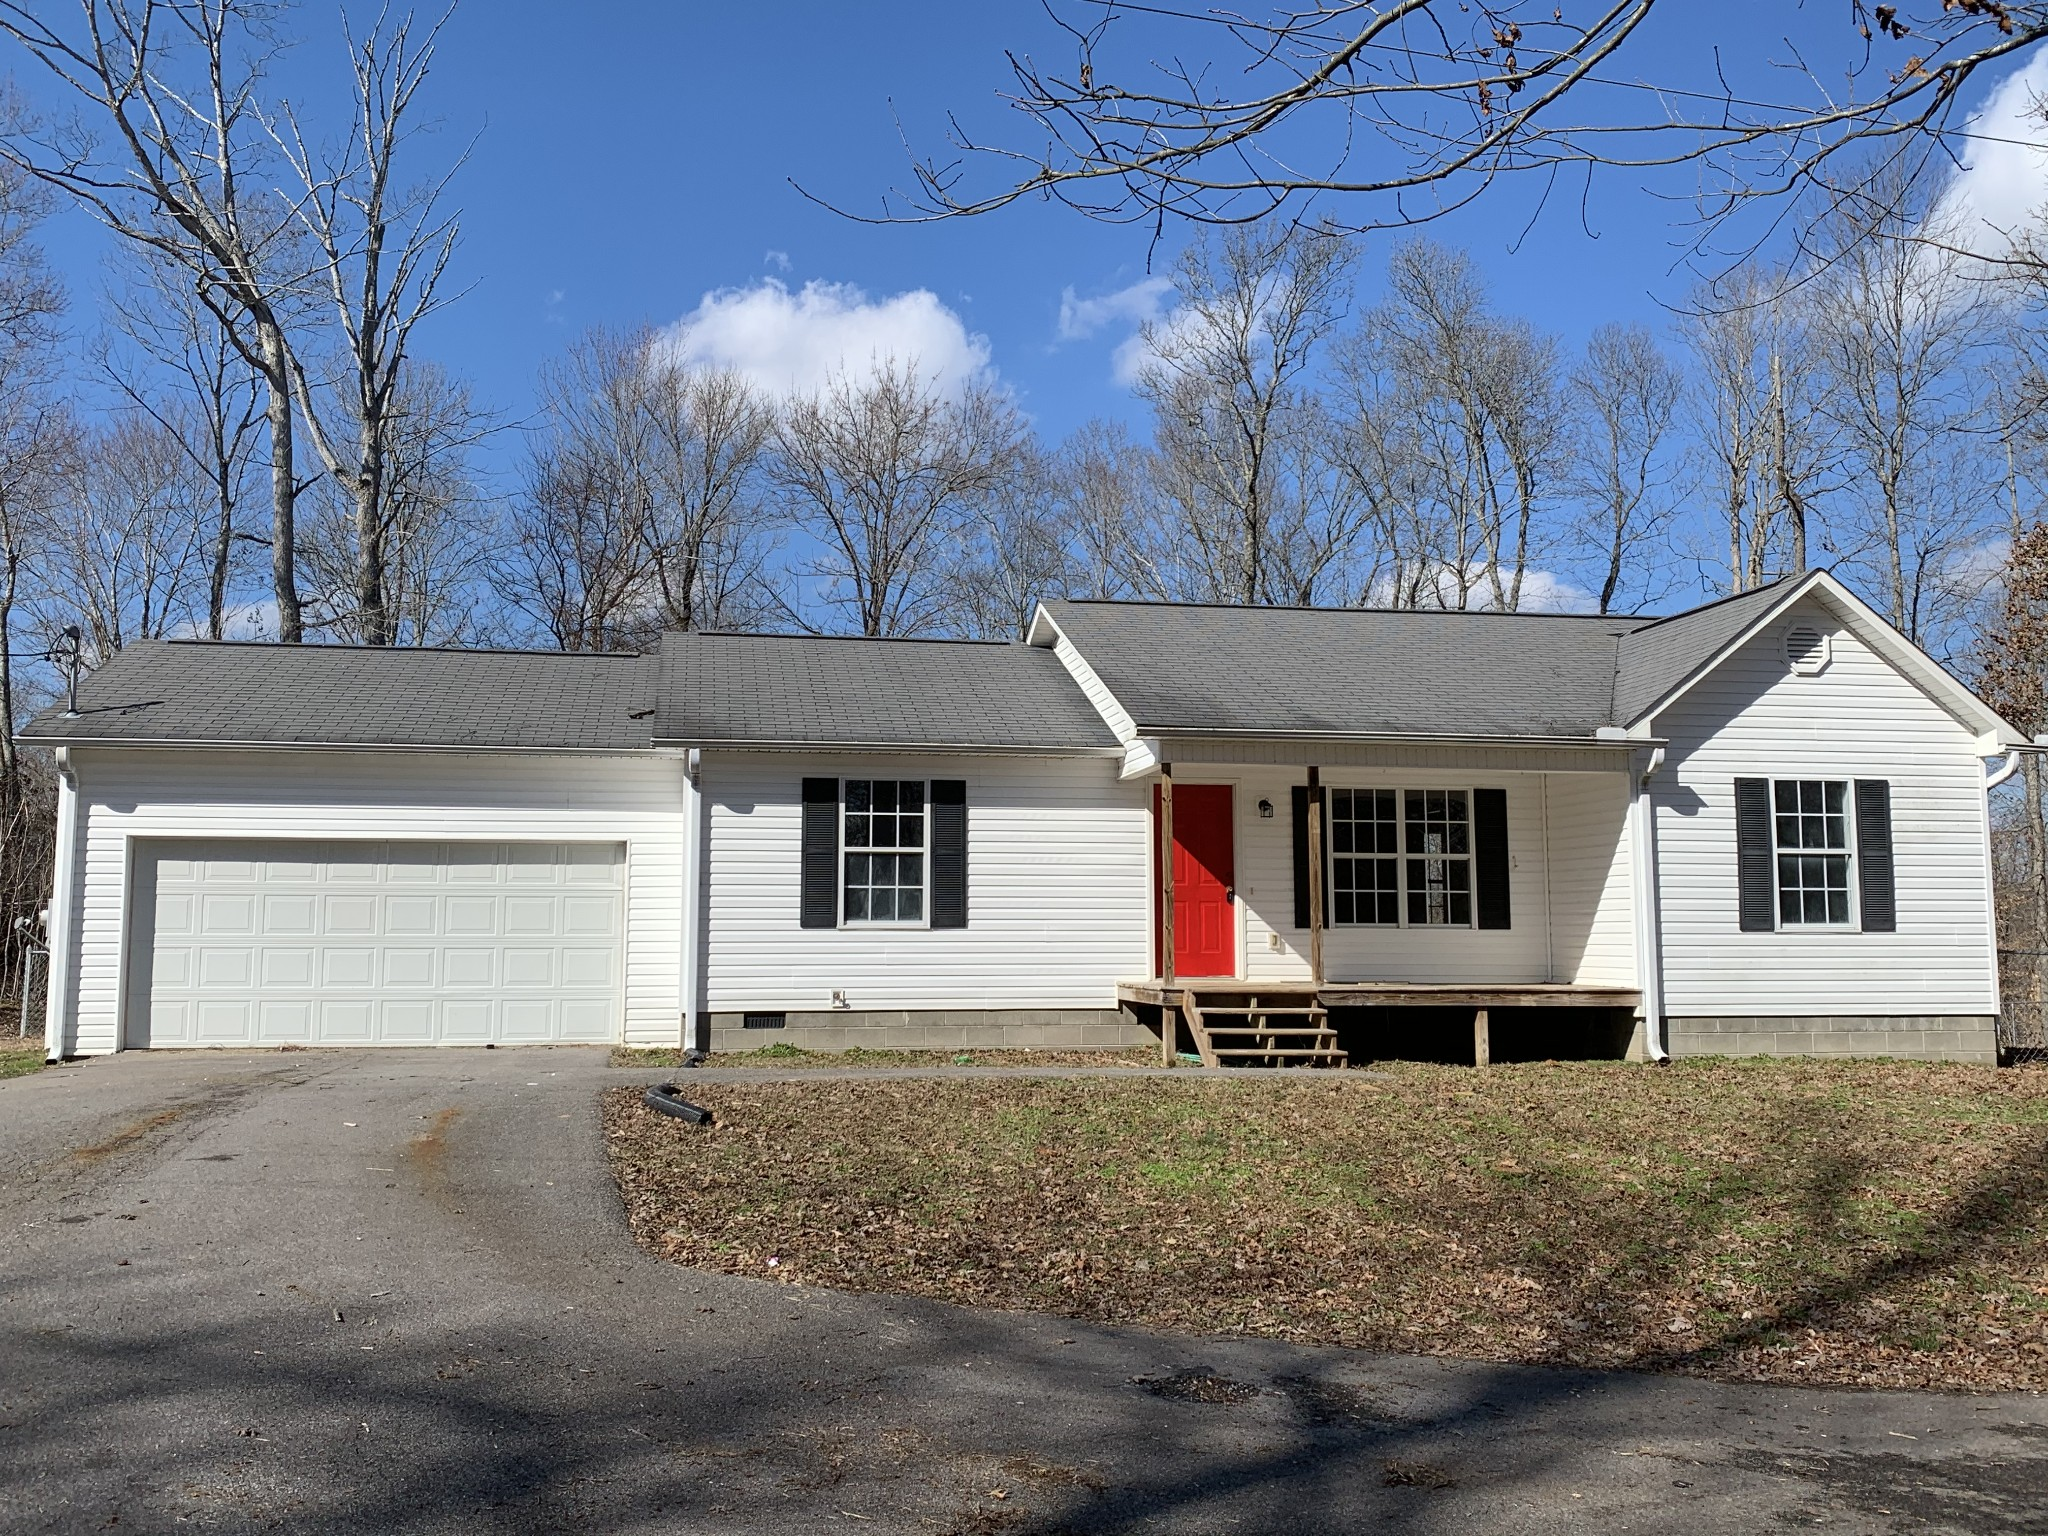 6071 Holladay Rd, Holladay, TN 38341 - Holladay, TN real estate listing